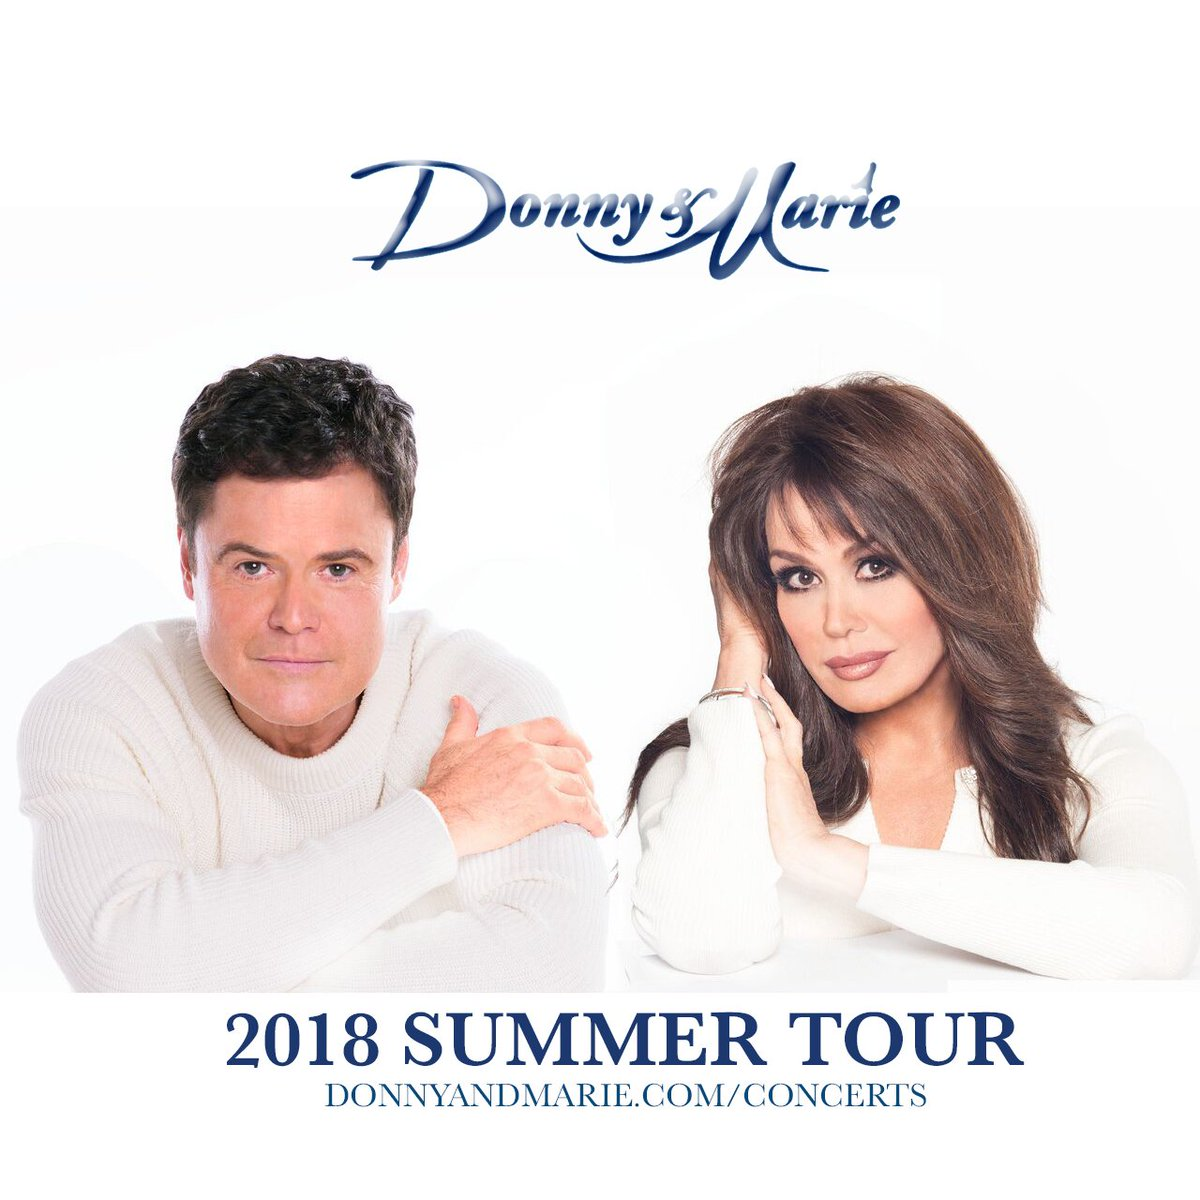 Donny Osmond On Twitter The Final City For Our Summer Tour Is